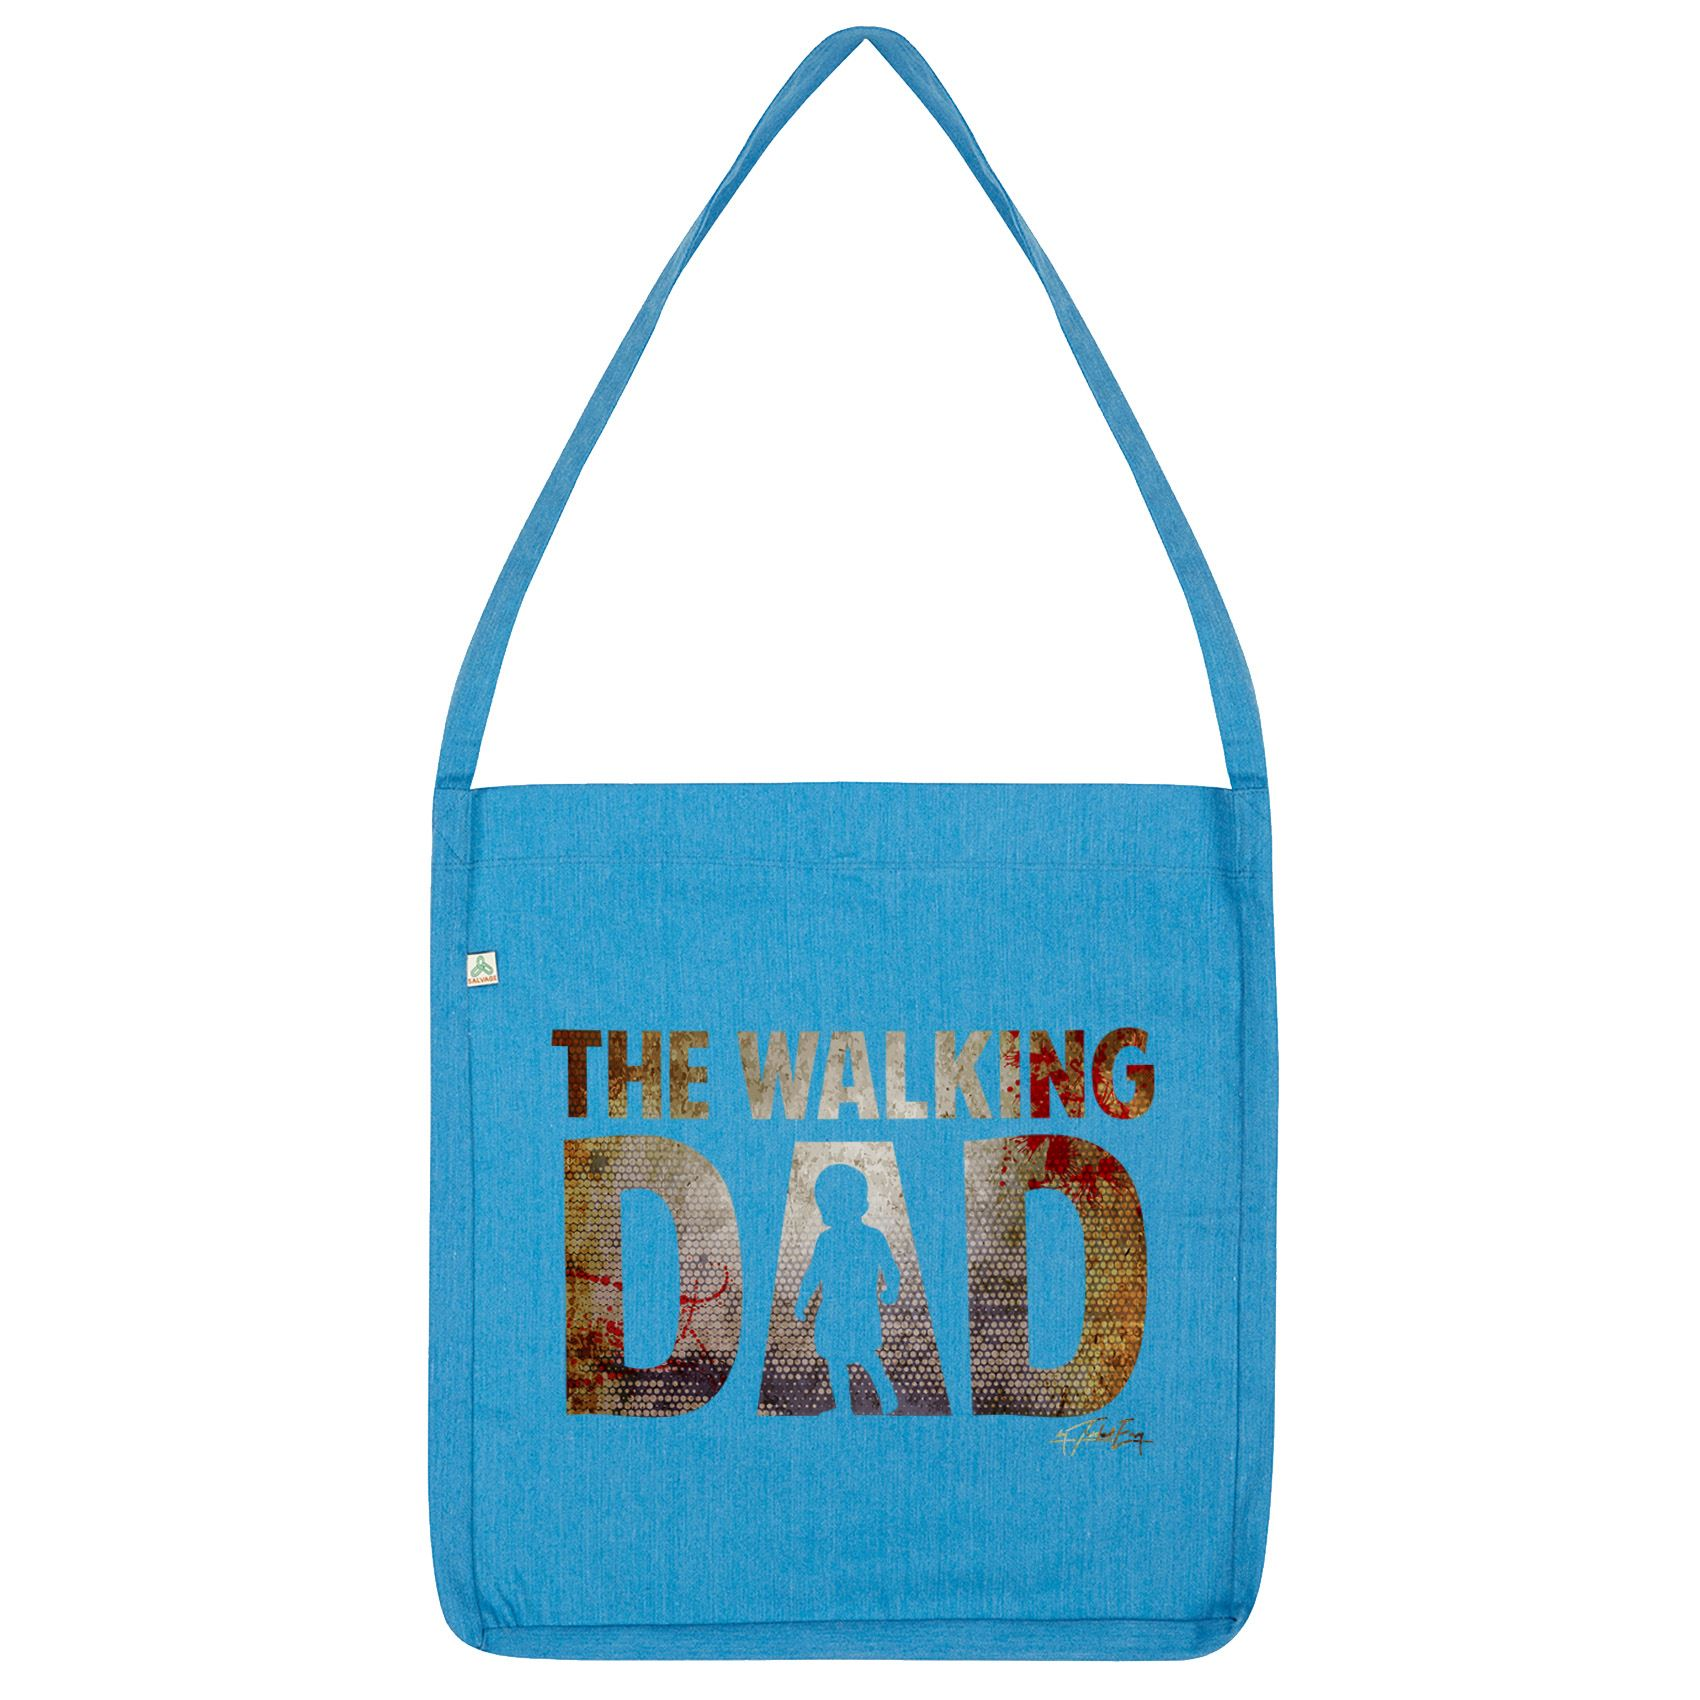 details about twisted envy the walking dad tote bag